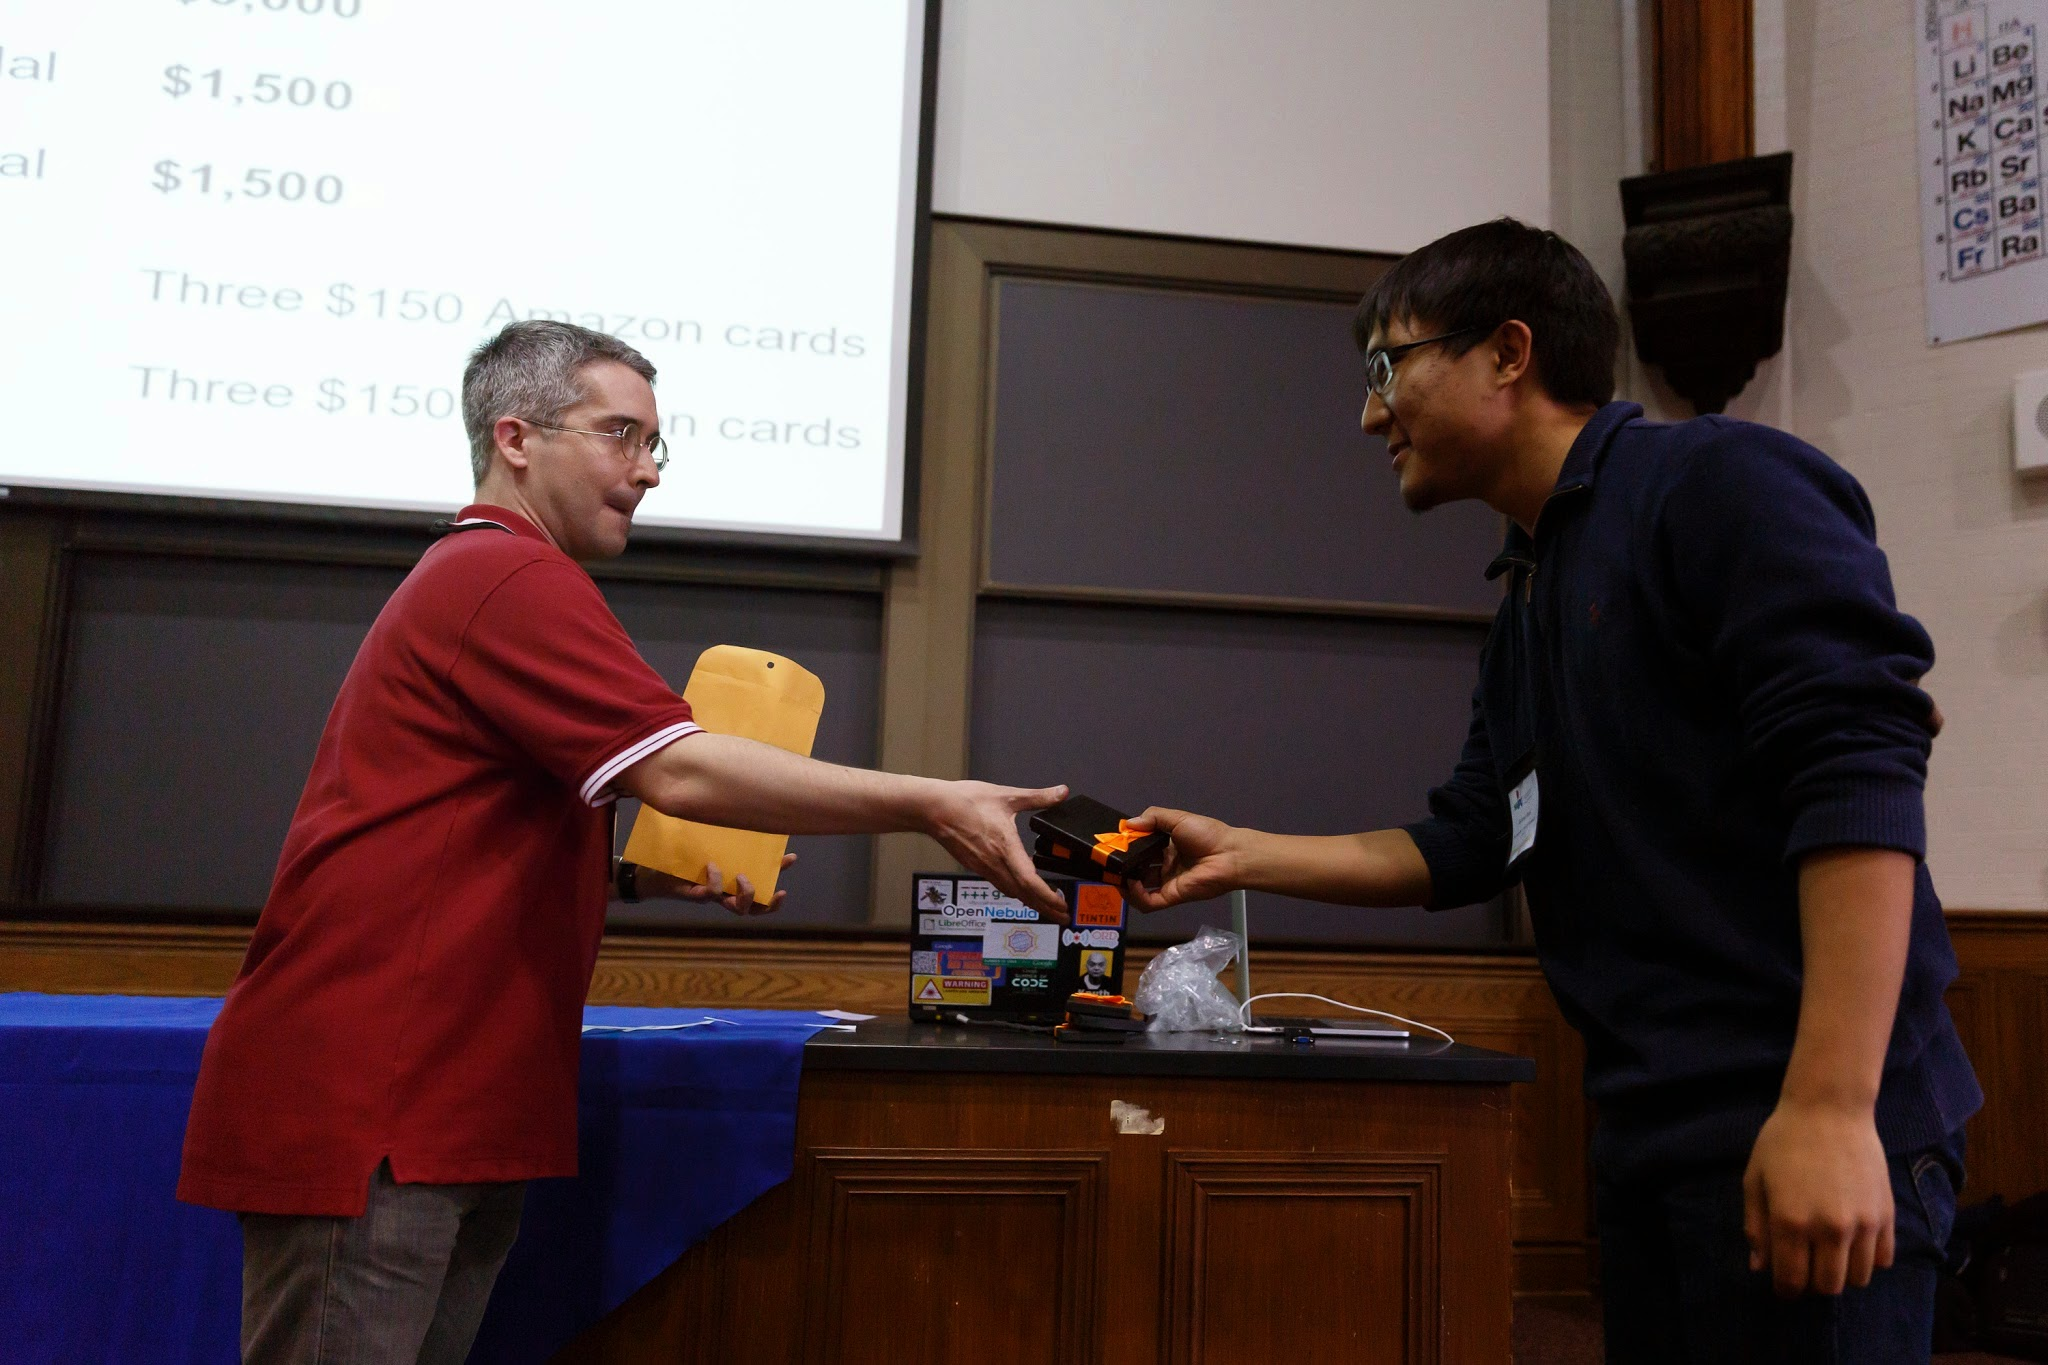 Photo: Images from the NAIPC (North American Invitational Programming Contest 2014) at the University of Chicago March 29, 2014. Photo by JasonSmith.com